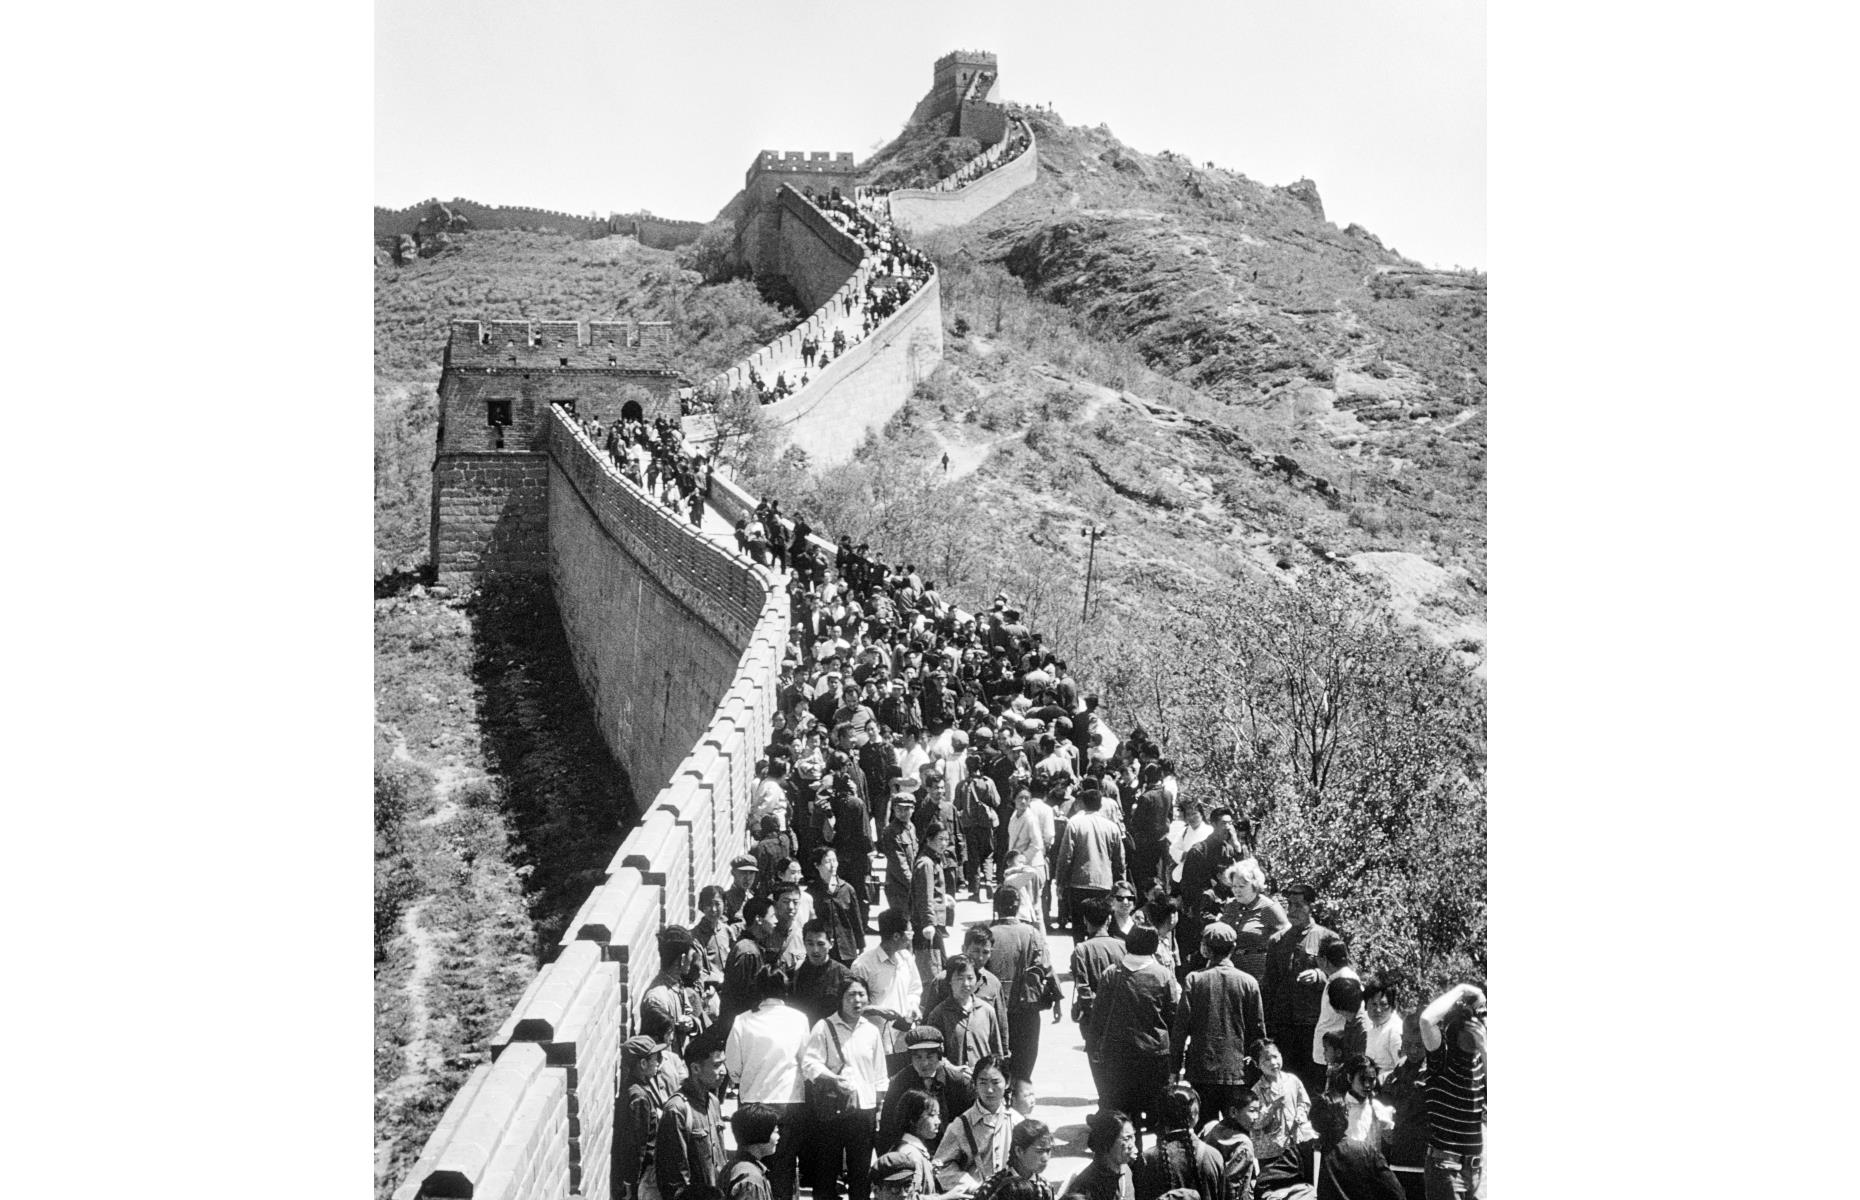 Slide 46 of 51: It turns out overcrowding at the Great Wall of China is nothing new – if this photograph from the 1970s is anything to go by. The landmark, which has an official length of 13,170 miles (21,196km), was mainly built during the Ming dynasty, which lasted between 1368 and 1644. In 2018, the most popular section of the Great Wall, Badaling, received more than 9.9 million visitors, reaching 80,000 a day during peak season.